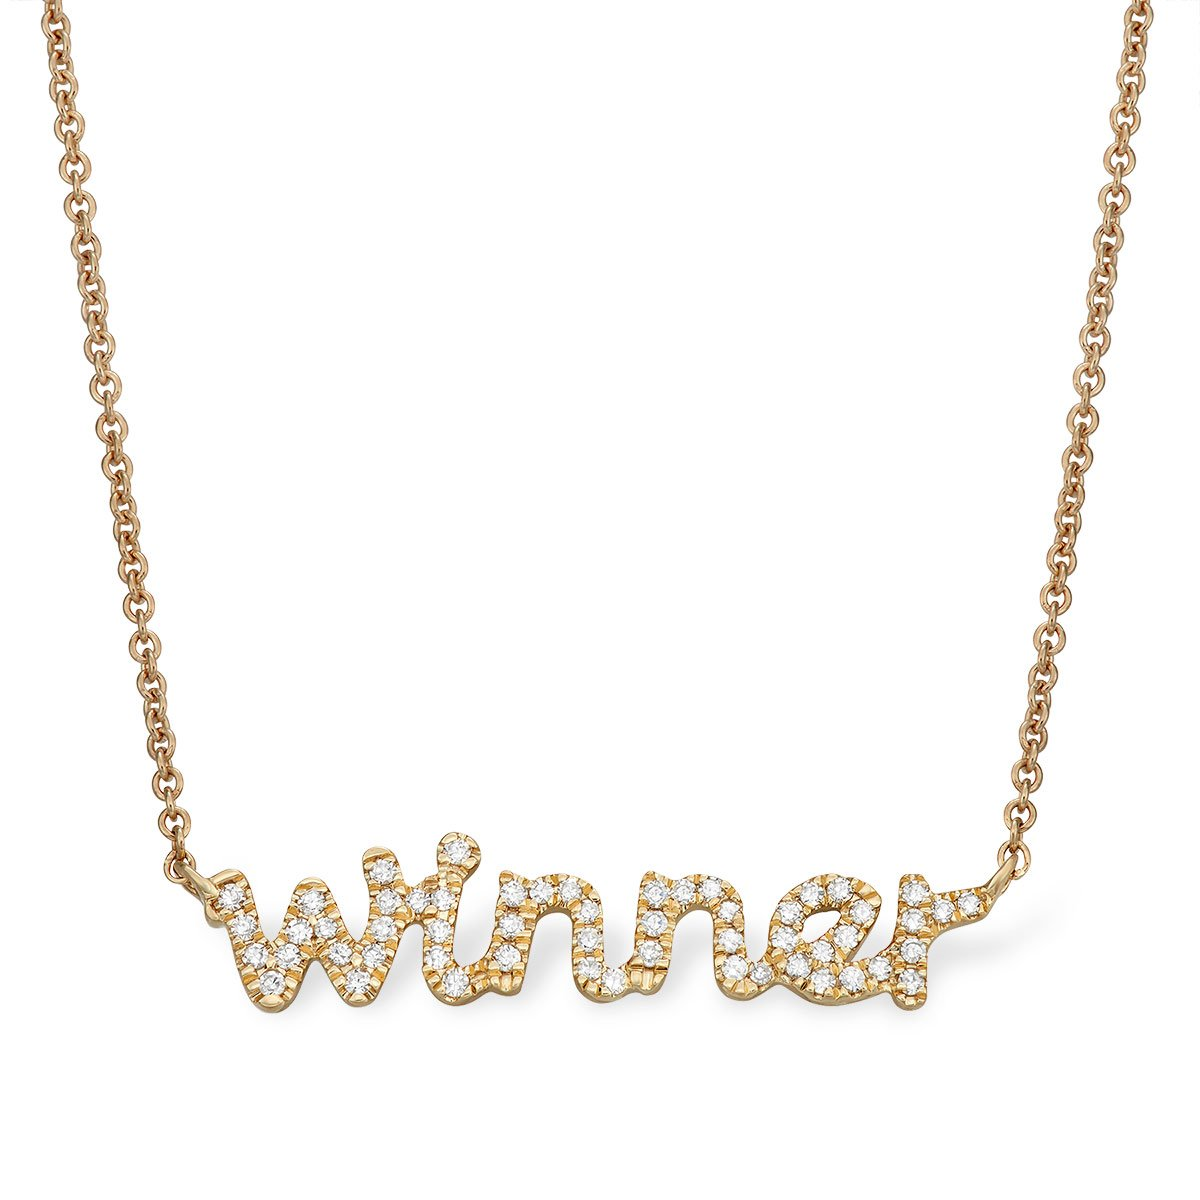 'Winner' Message Necklace - Serena Williams Jewelry